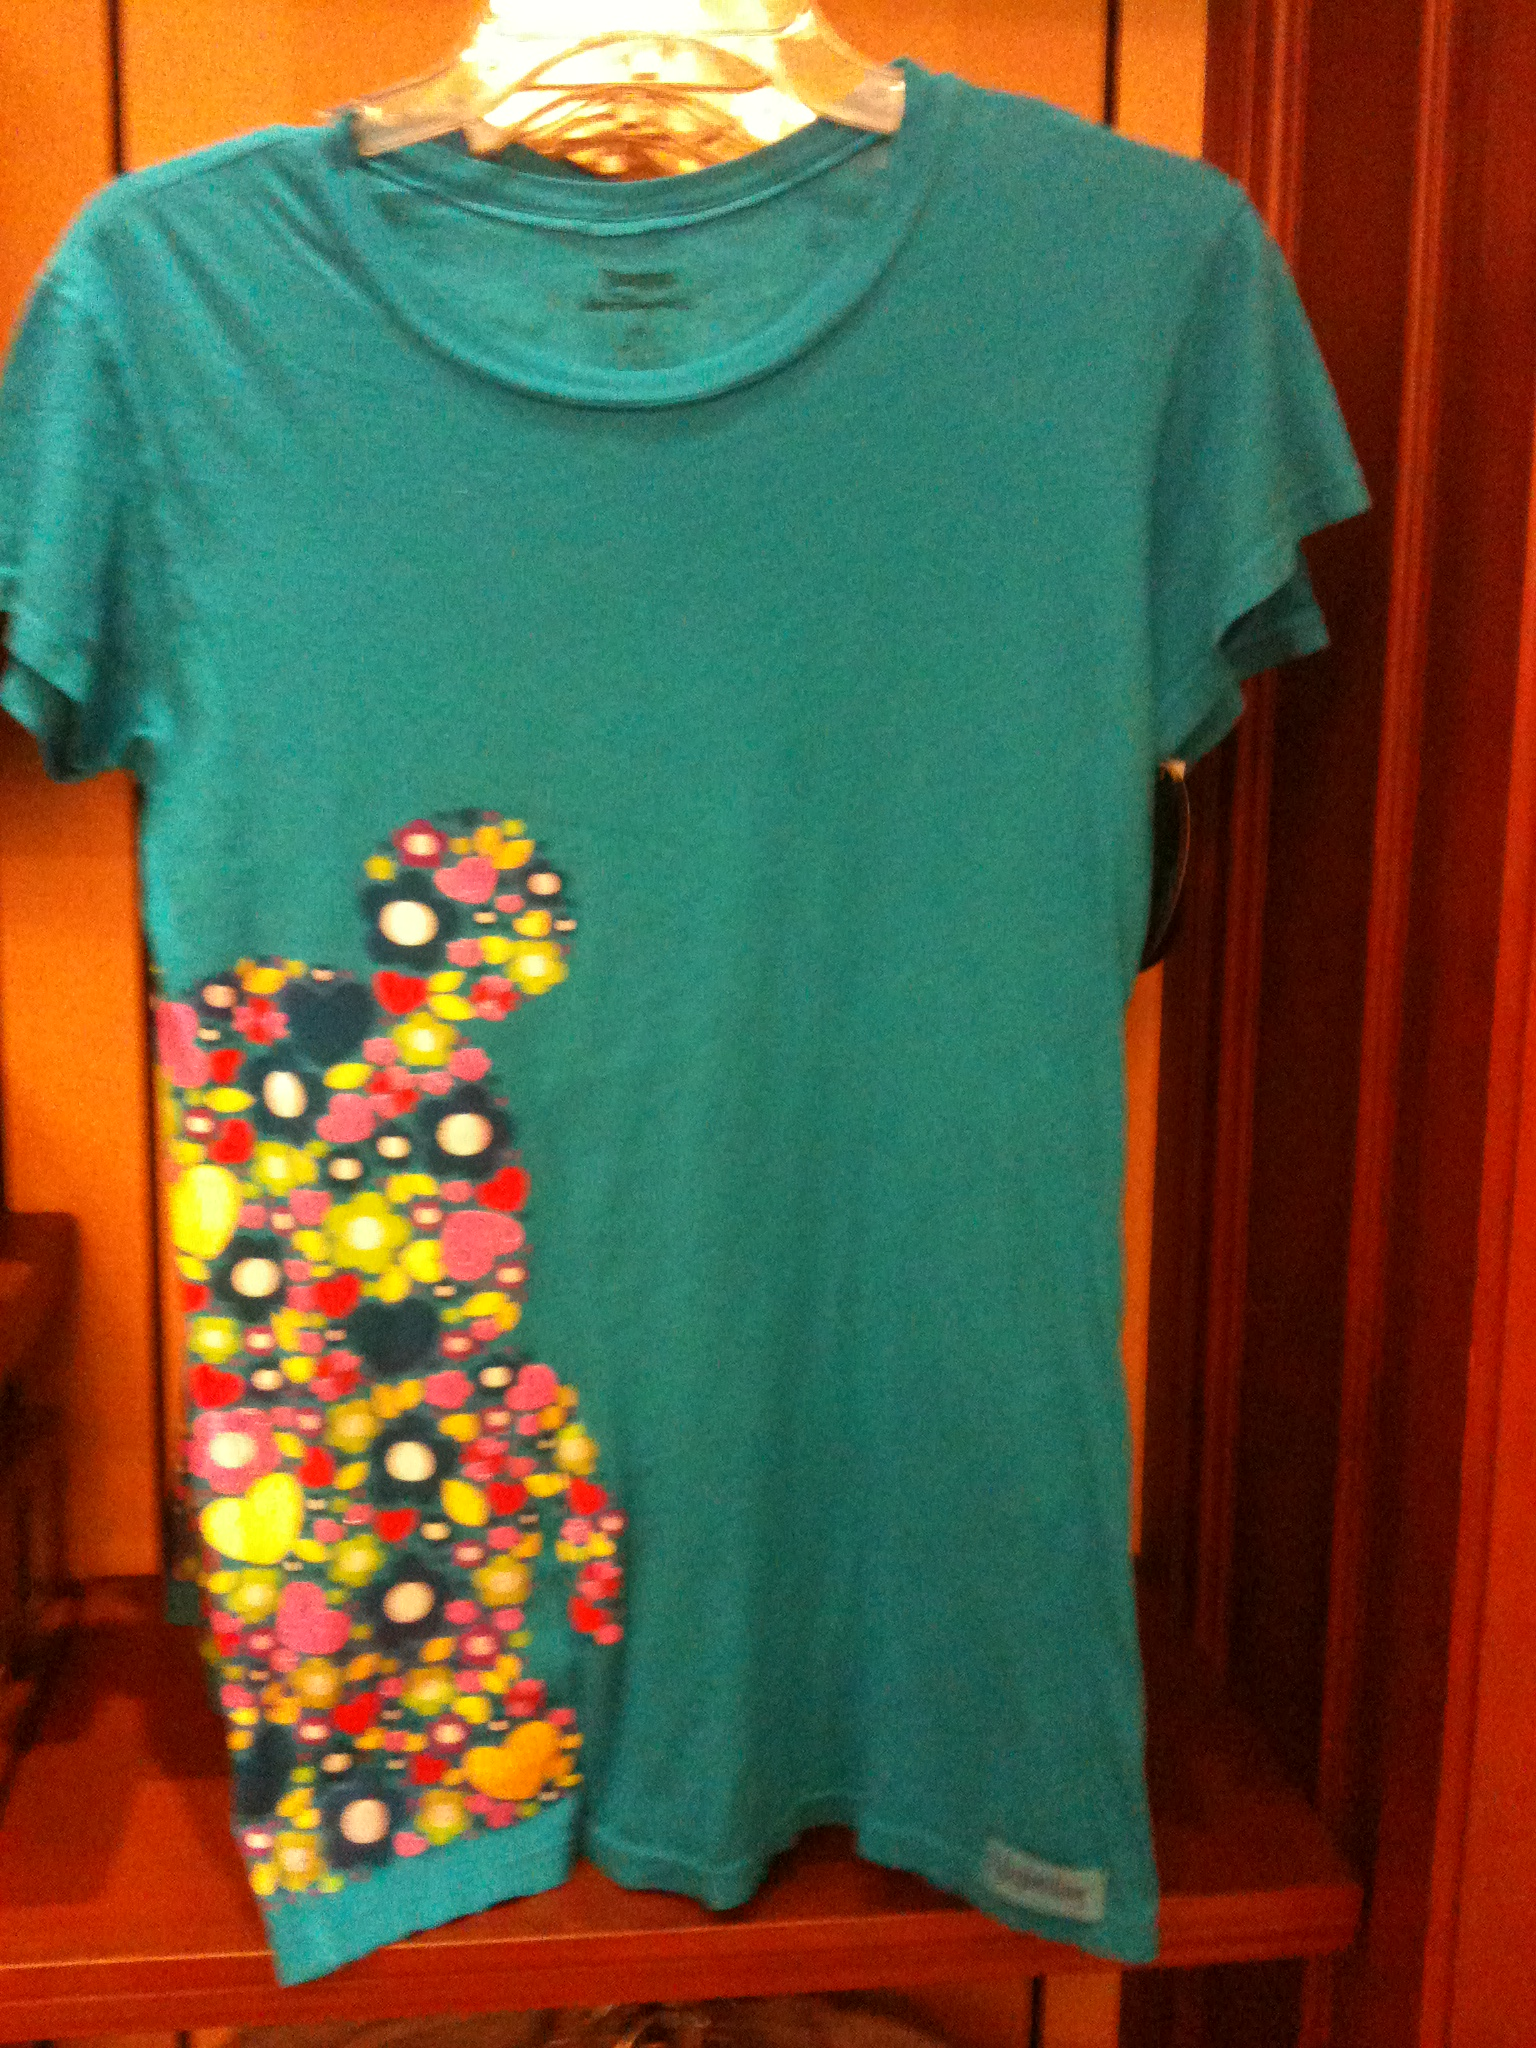 Vinylmation Clothing Now At The Emporium In The Magic